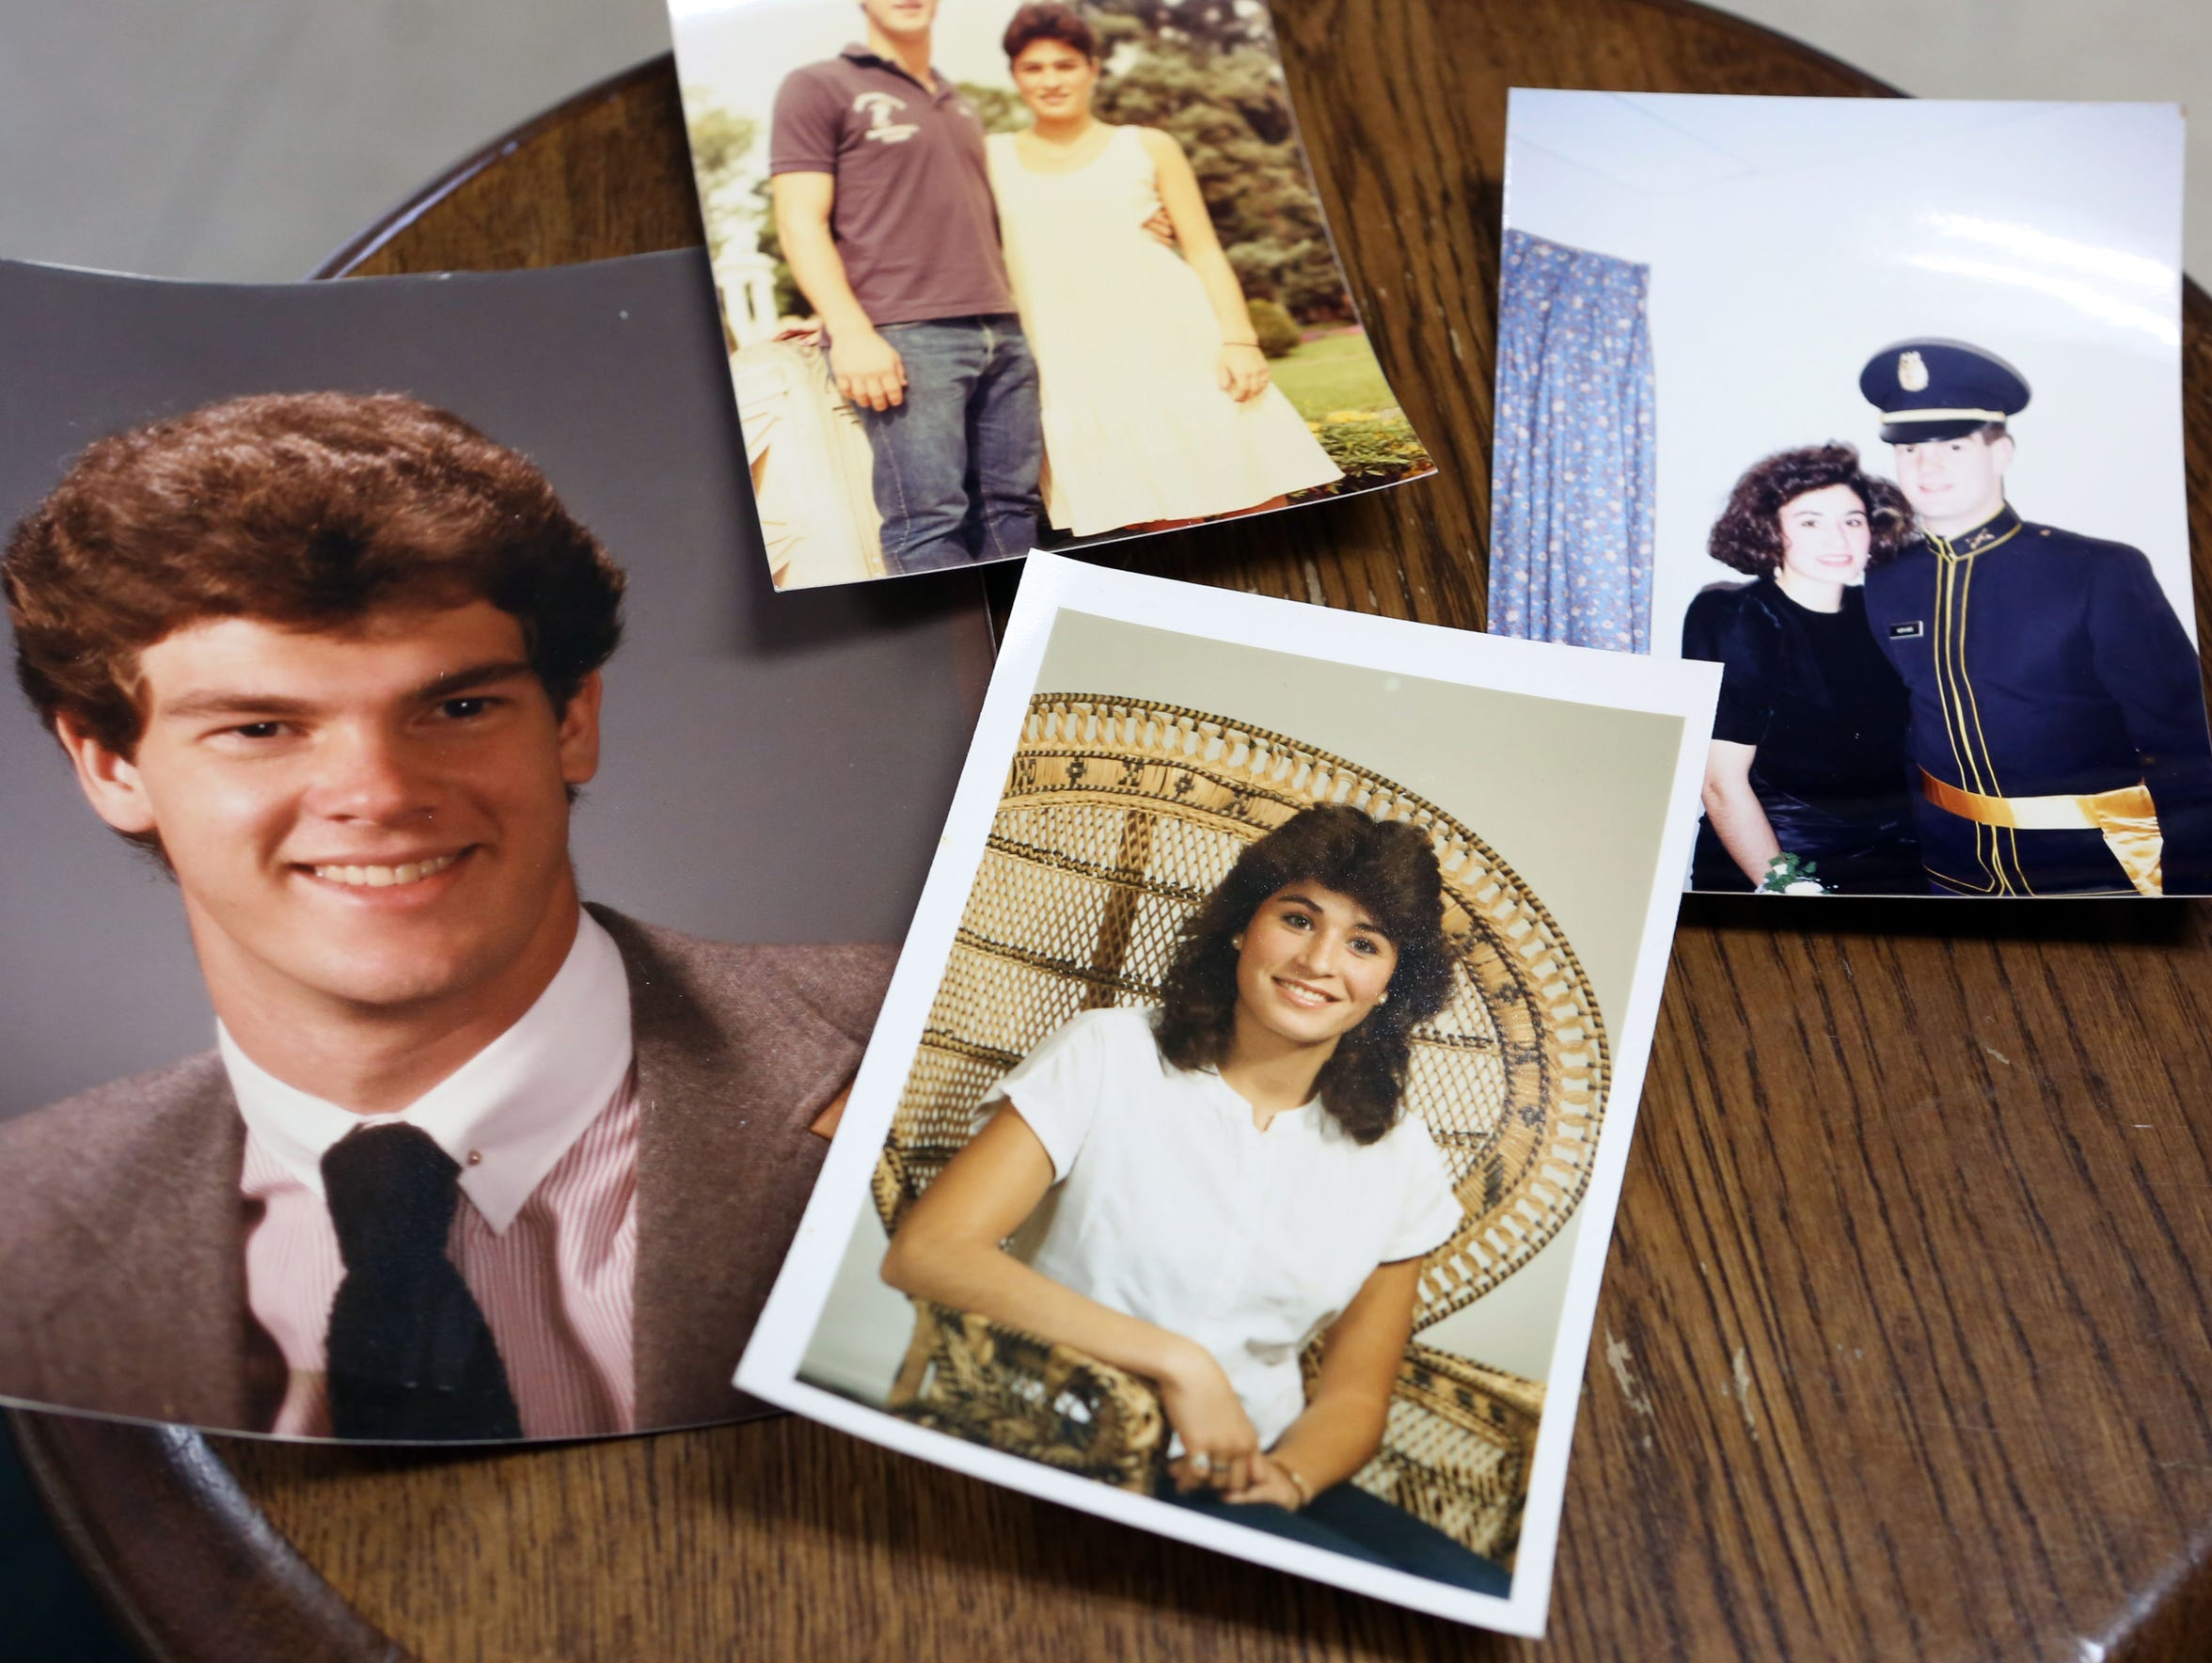 High school and college photos of Renny and Annemarie